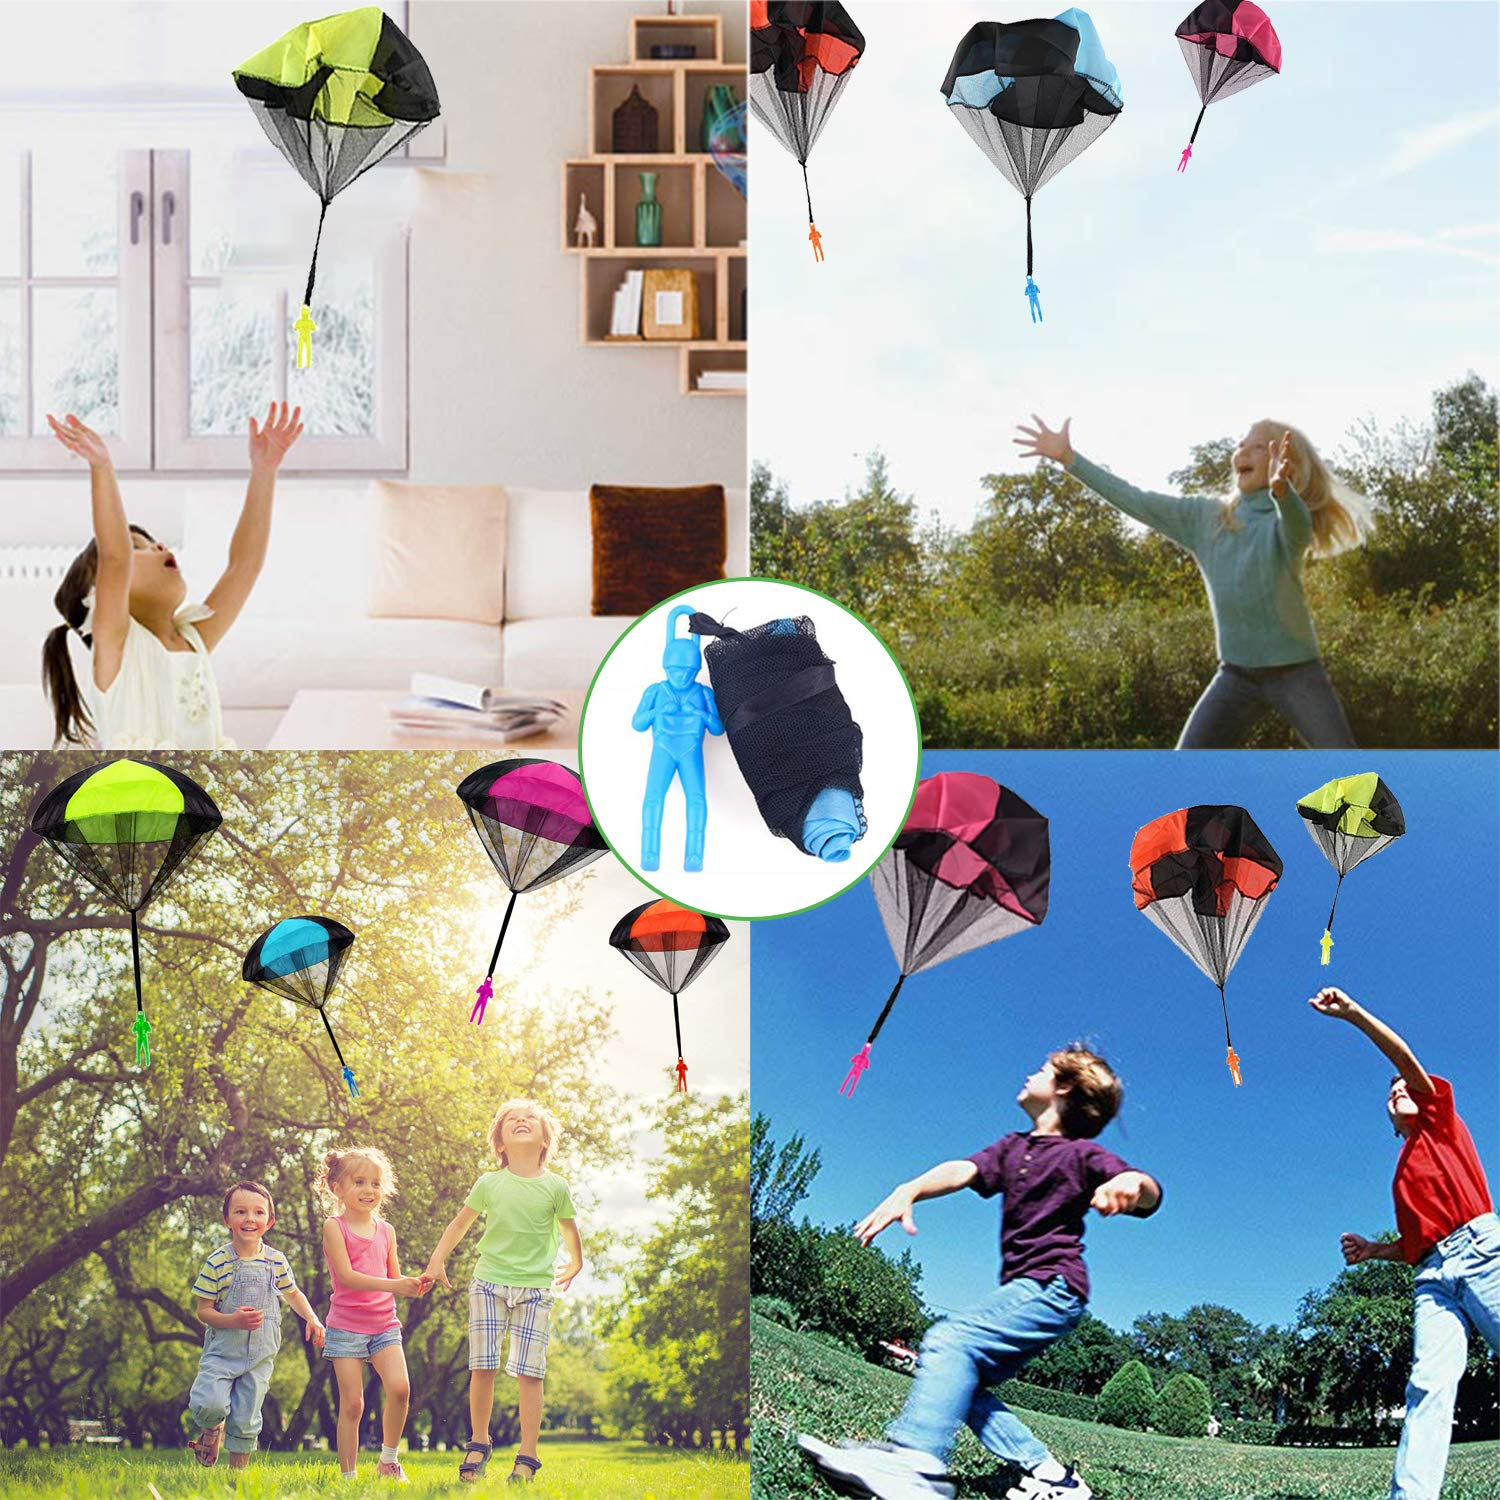 Camlinbo Parachute Toy-8 Pack Tangle Free Throwing Hand Throw Soldiers Parachute Man, Outdoor Children's Flying Toys for Kids Boys Girls Toddler No Battery nor Assembly Required by Camlinbo (Image #2)